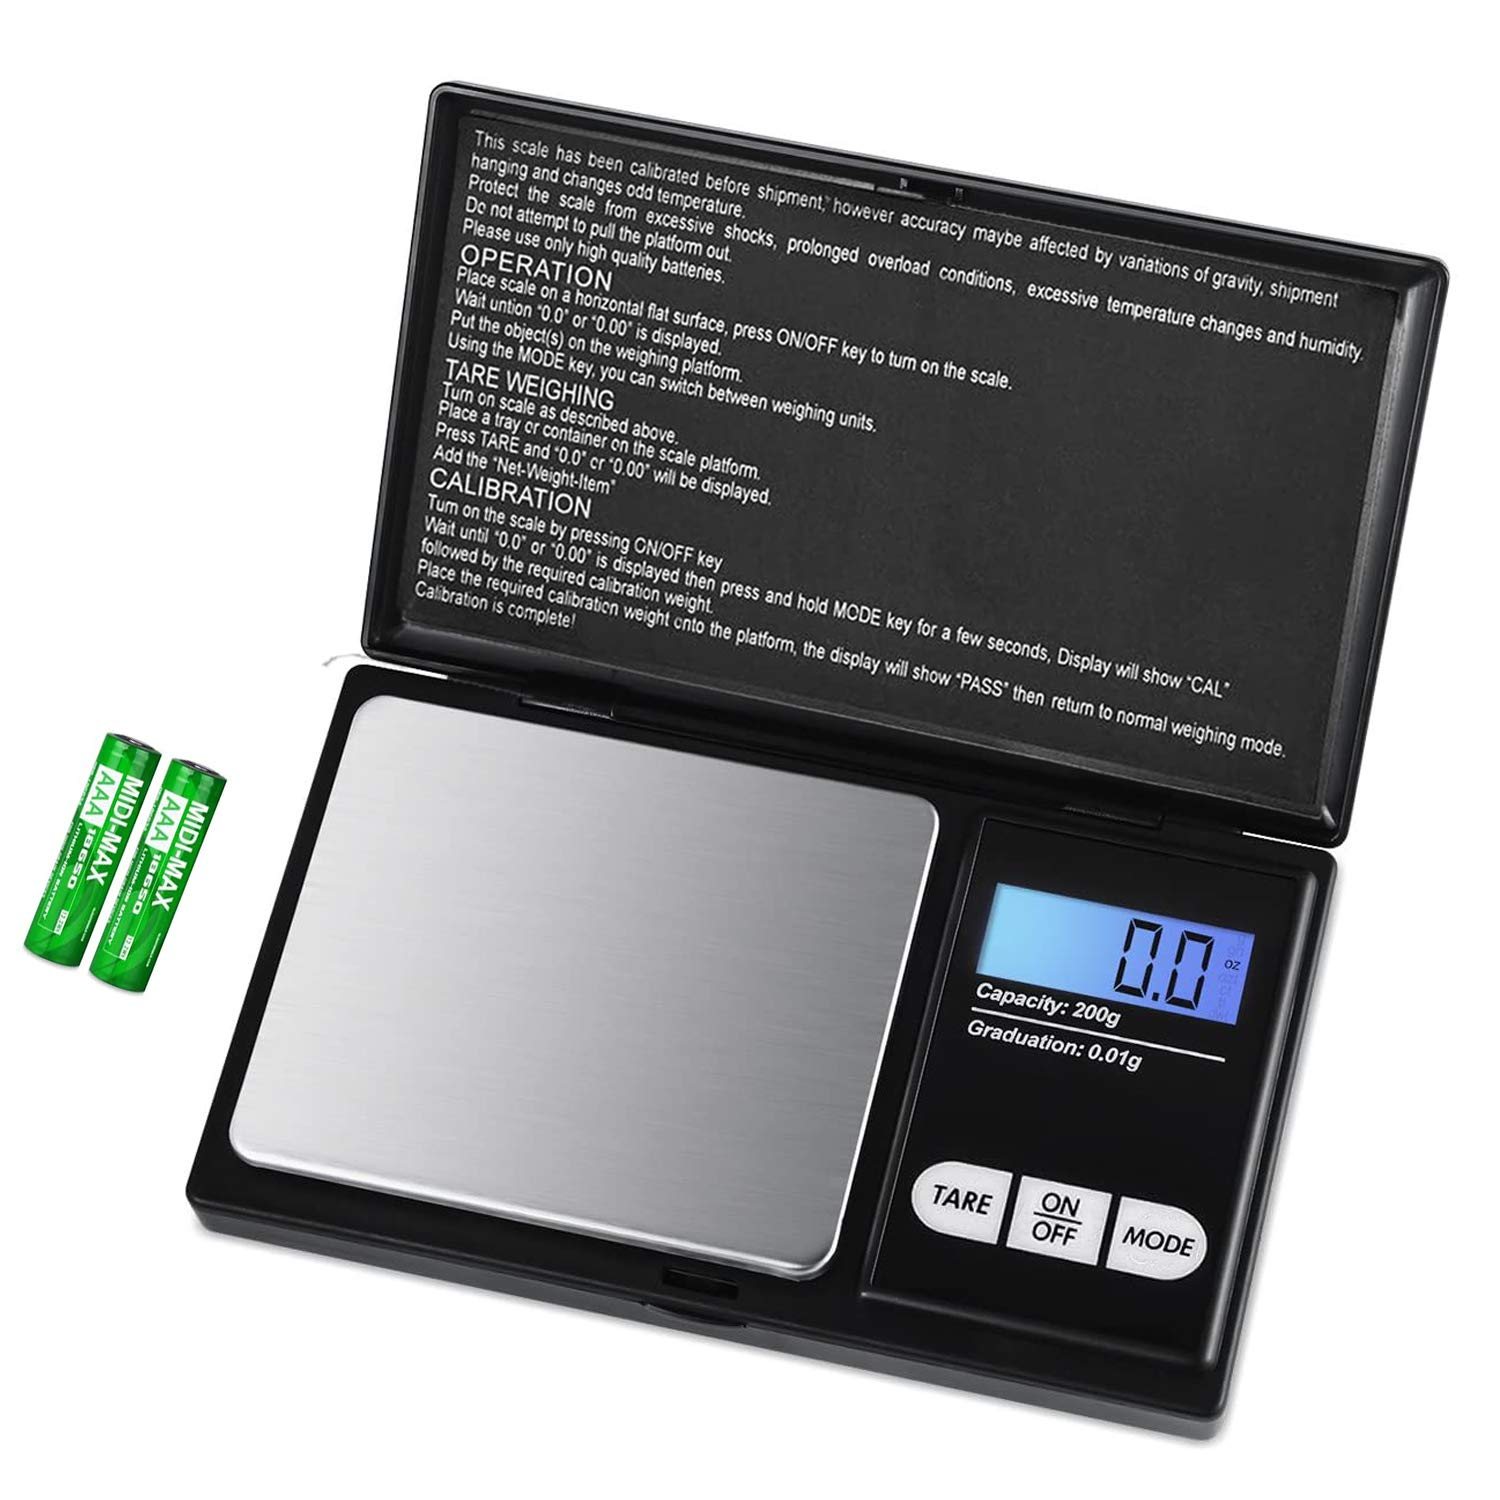 JOYIT Digital Pocket Scale - 200g by 0.01g Food Scale Grams and Ounces, Jewelry Scale Black, Kitchen Scale 200g